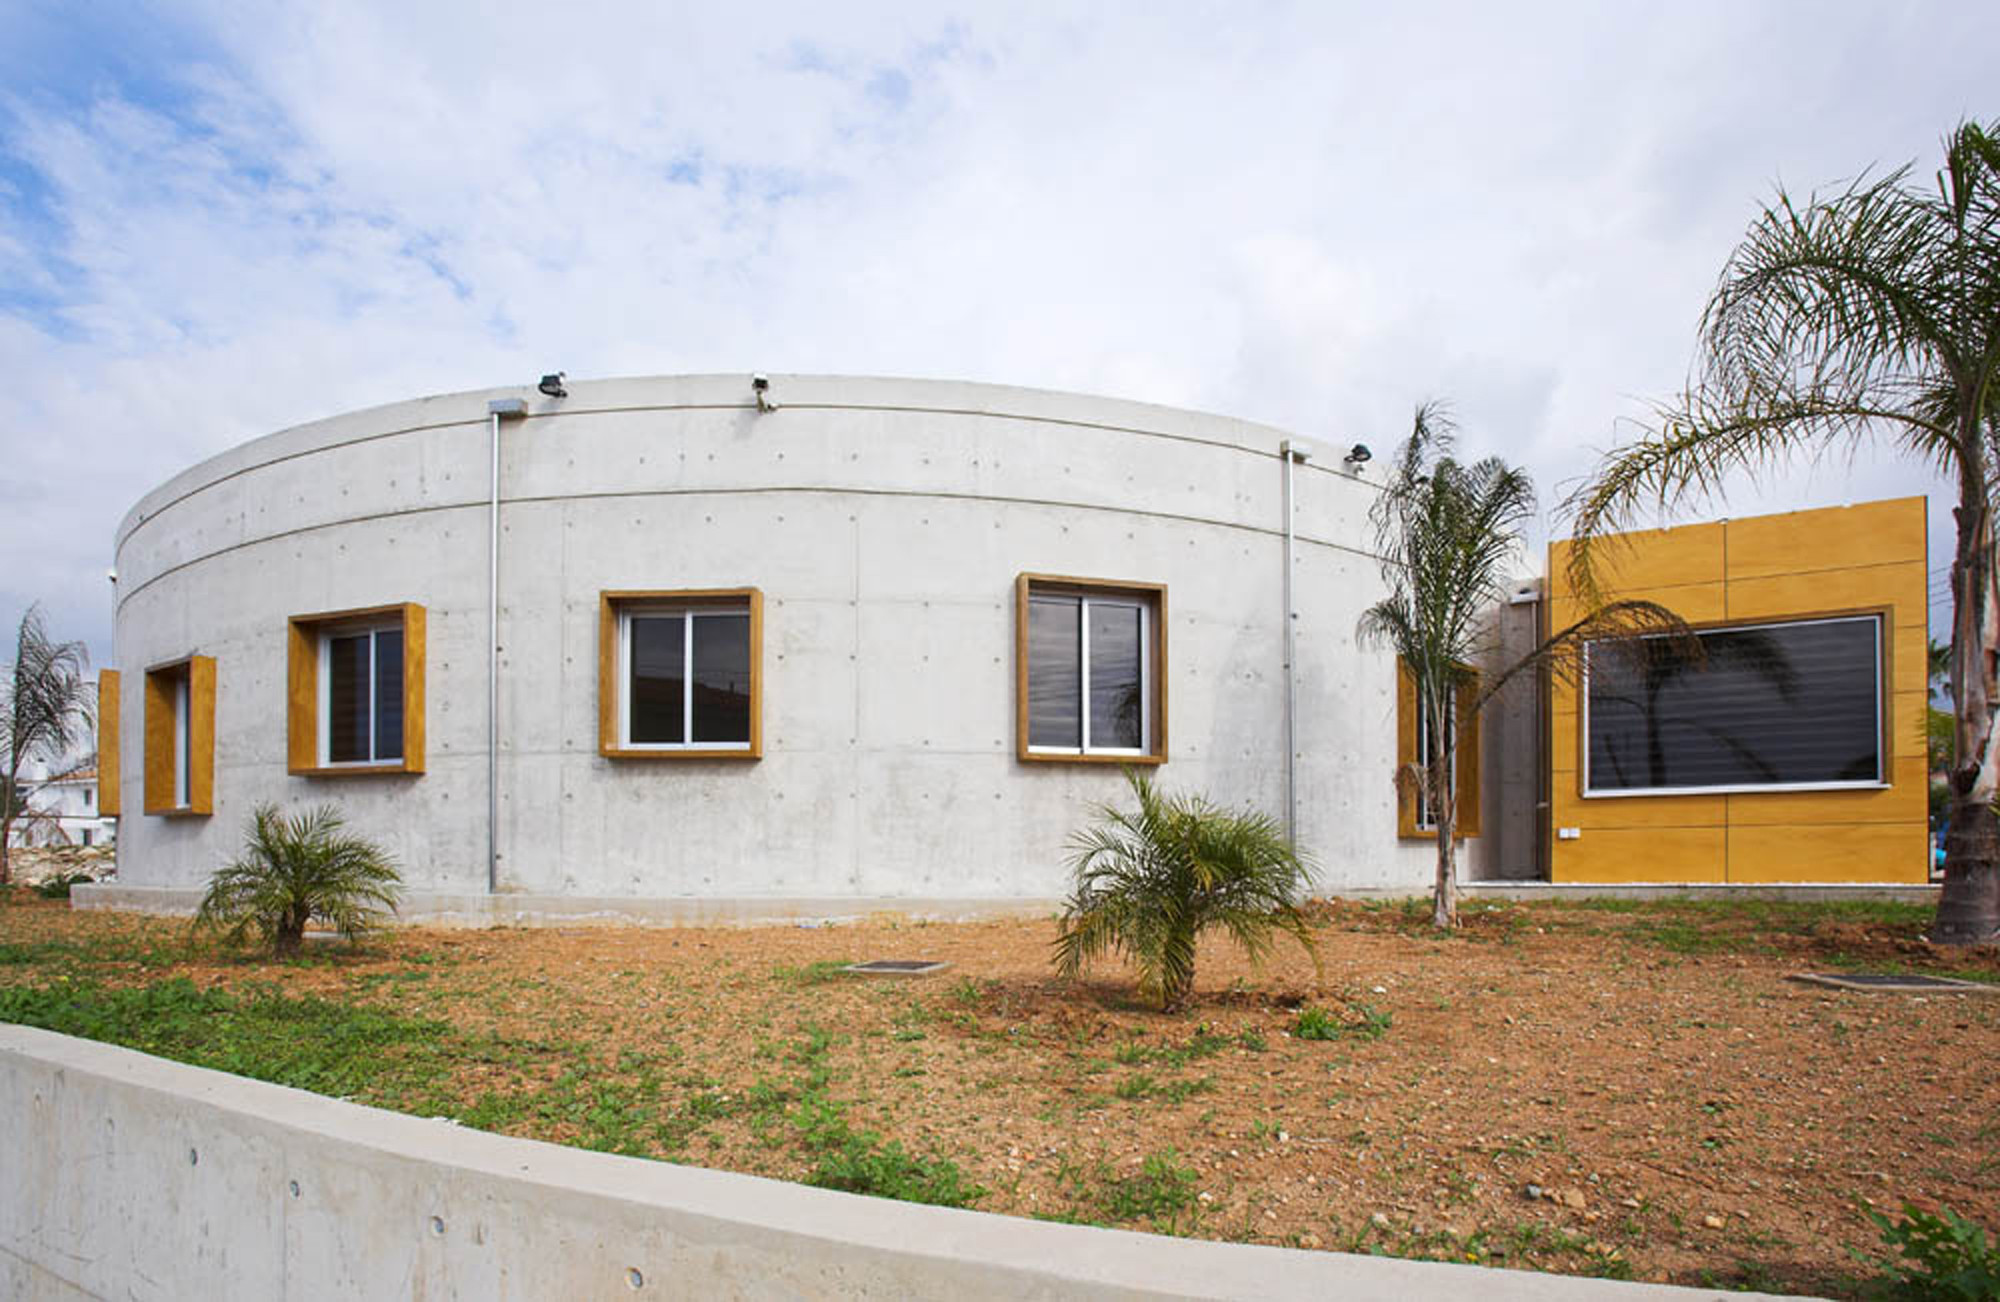 Outstanding Garden Round Houses Gallery - Simple Design Home ...